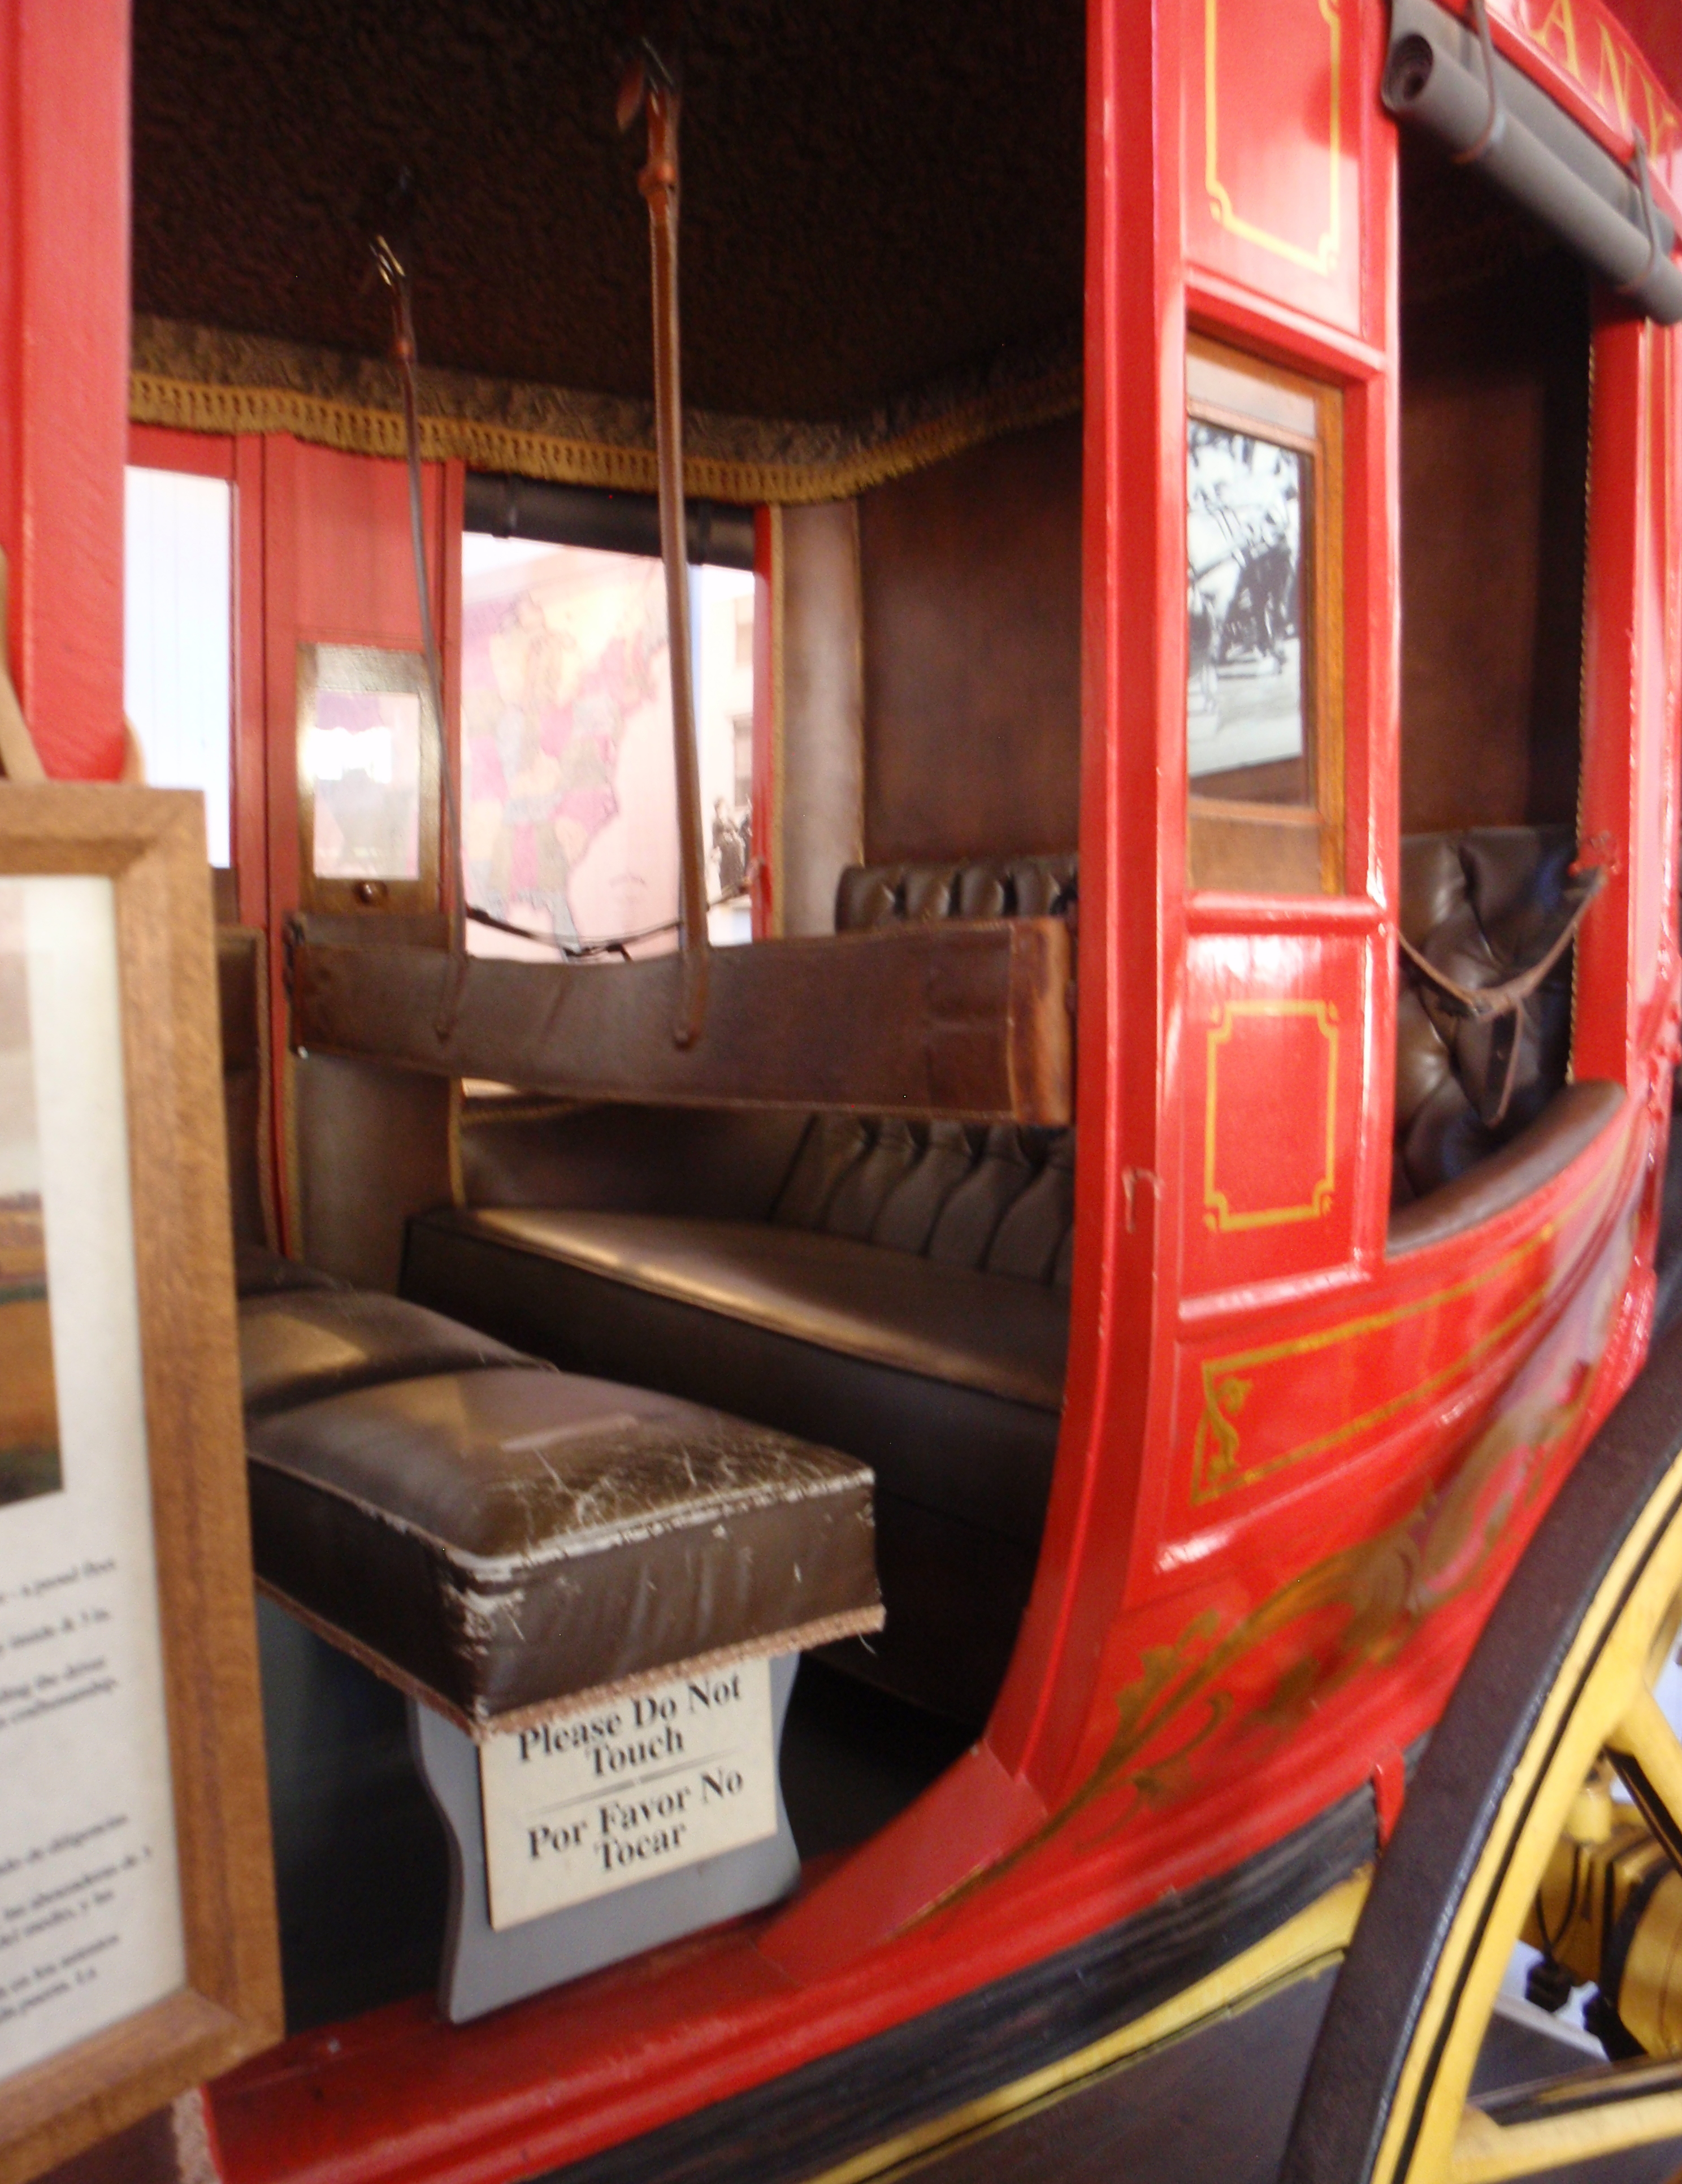 Interior of Concord coach. Imagine sharing that bench with two other passengers for the 24 day run from St Louis to San Diego. October 2016 photo at Wells Fargo's museum in San Diego by James Ulvog.